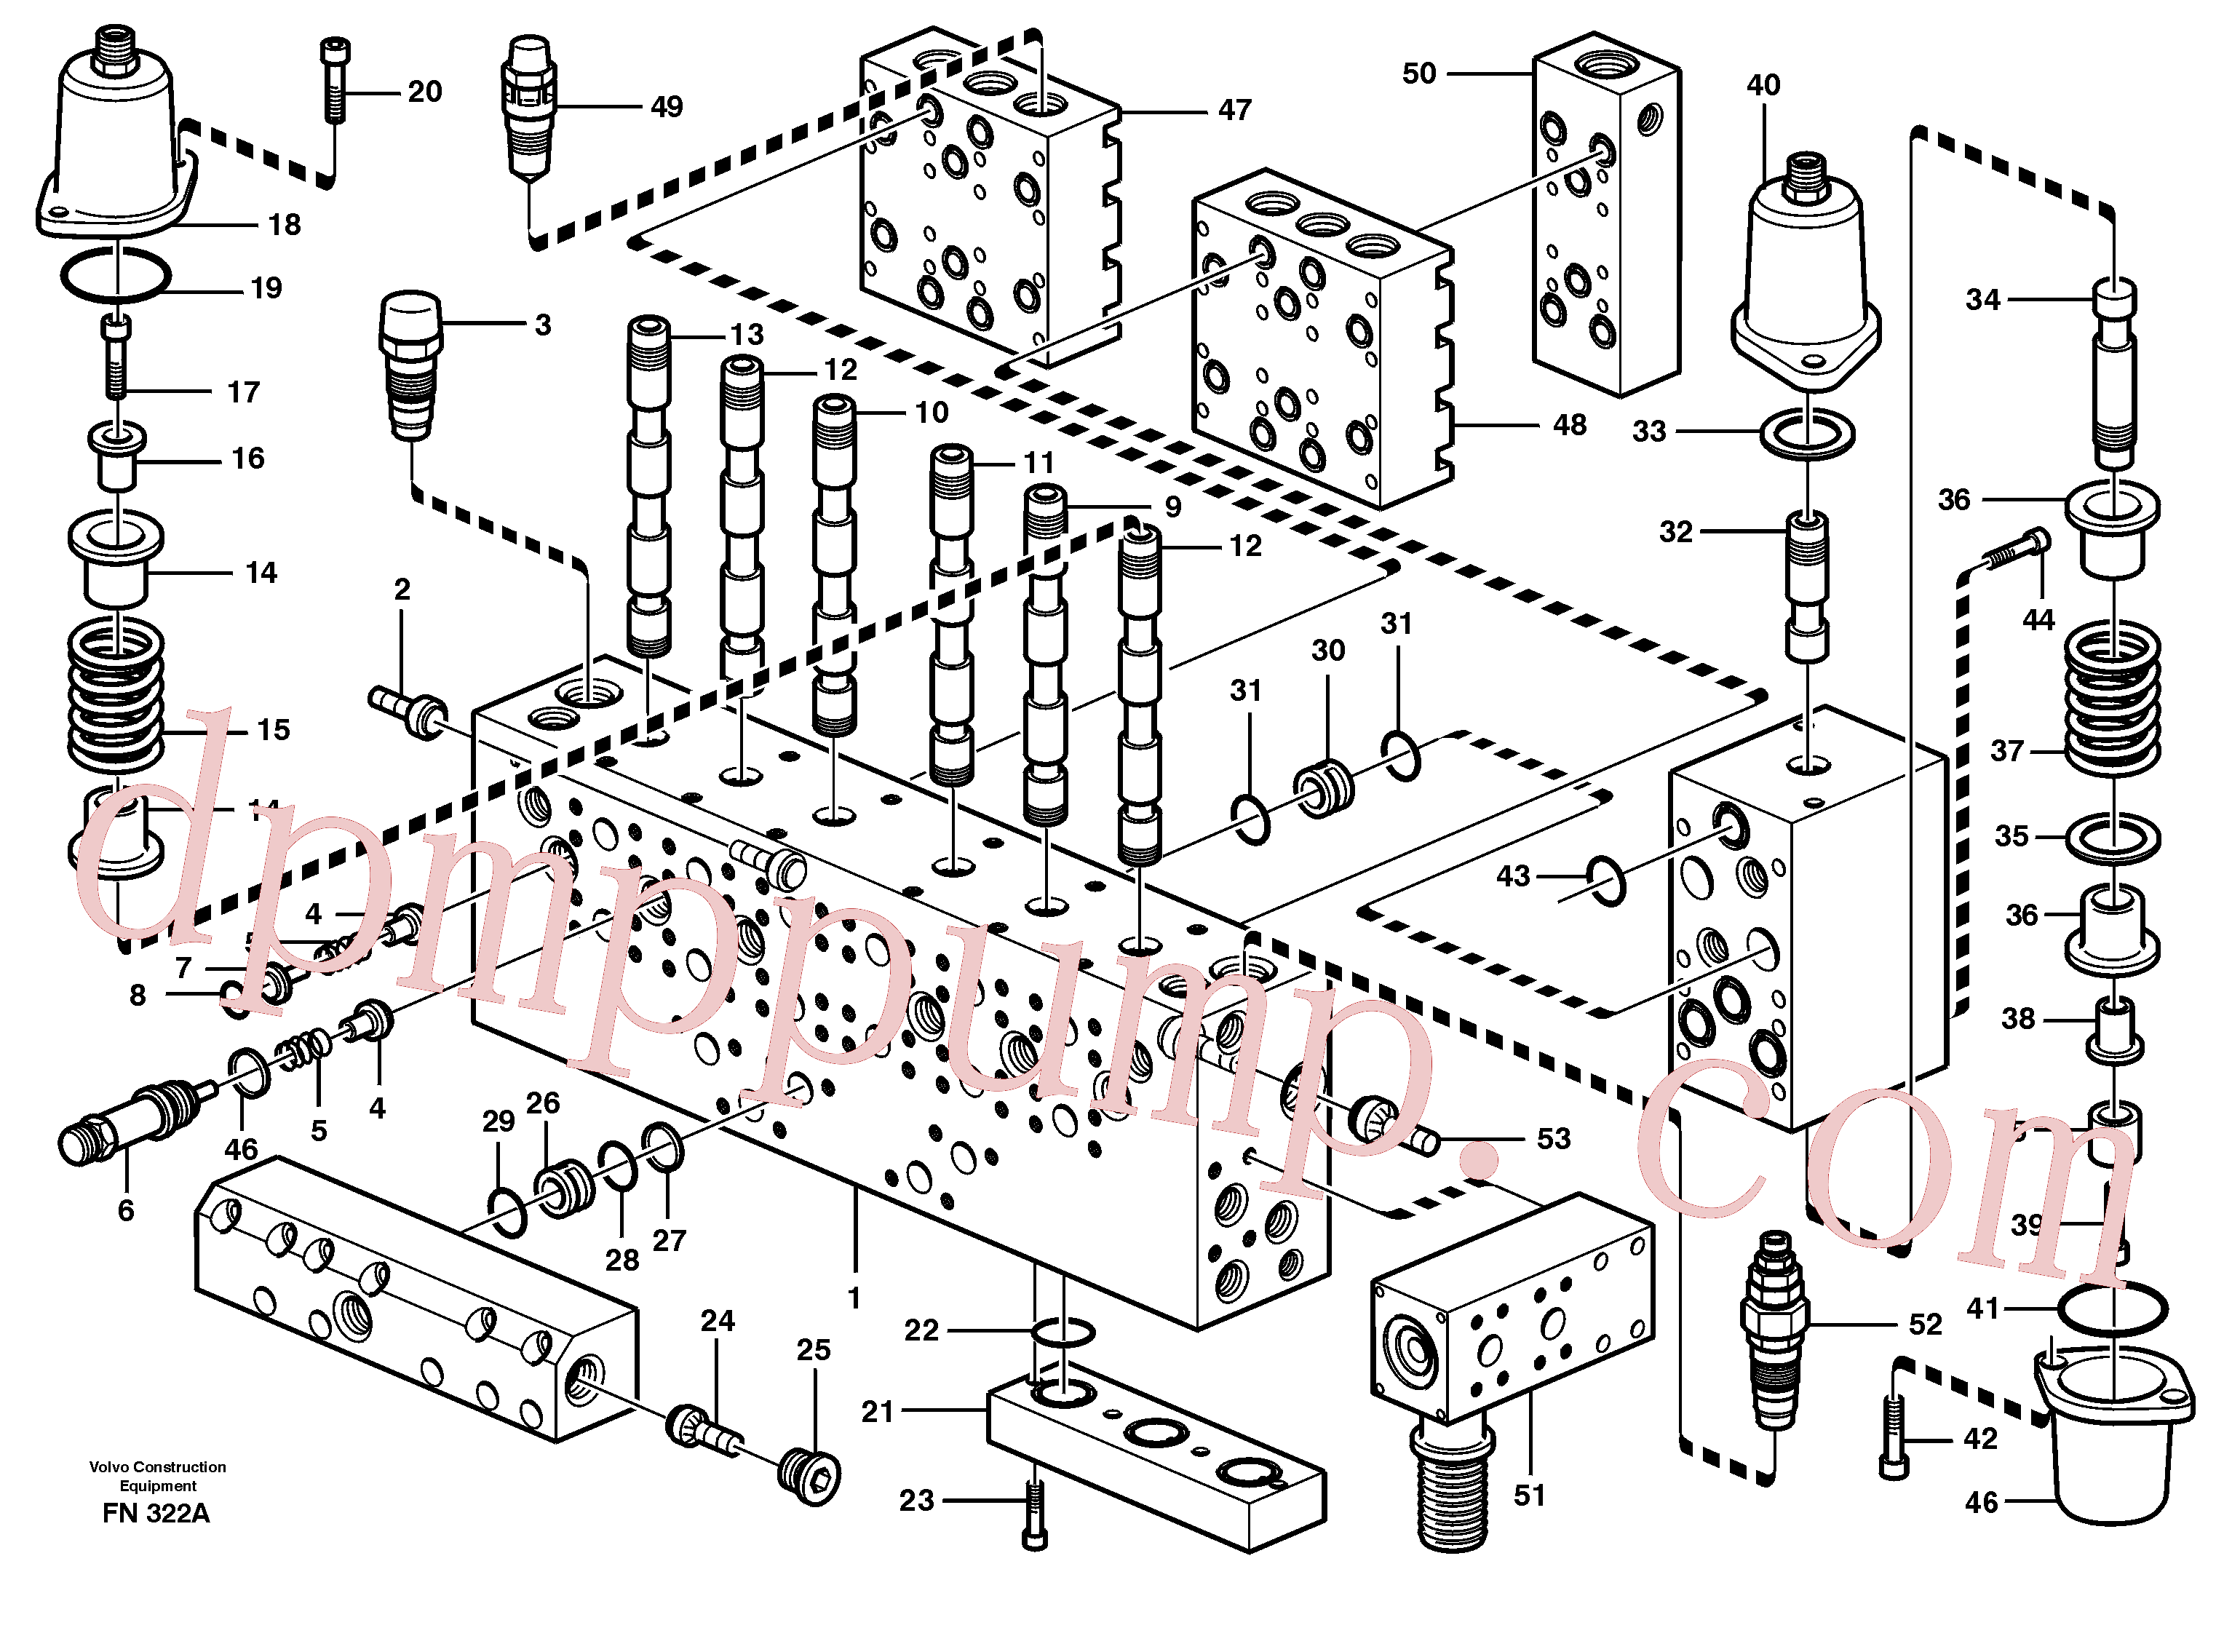 VOE14343364 for Volvo Main valve assembly, valves(FN322A assembly)